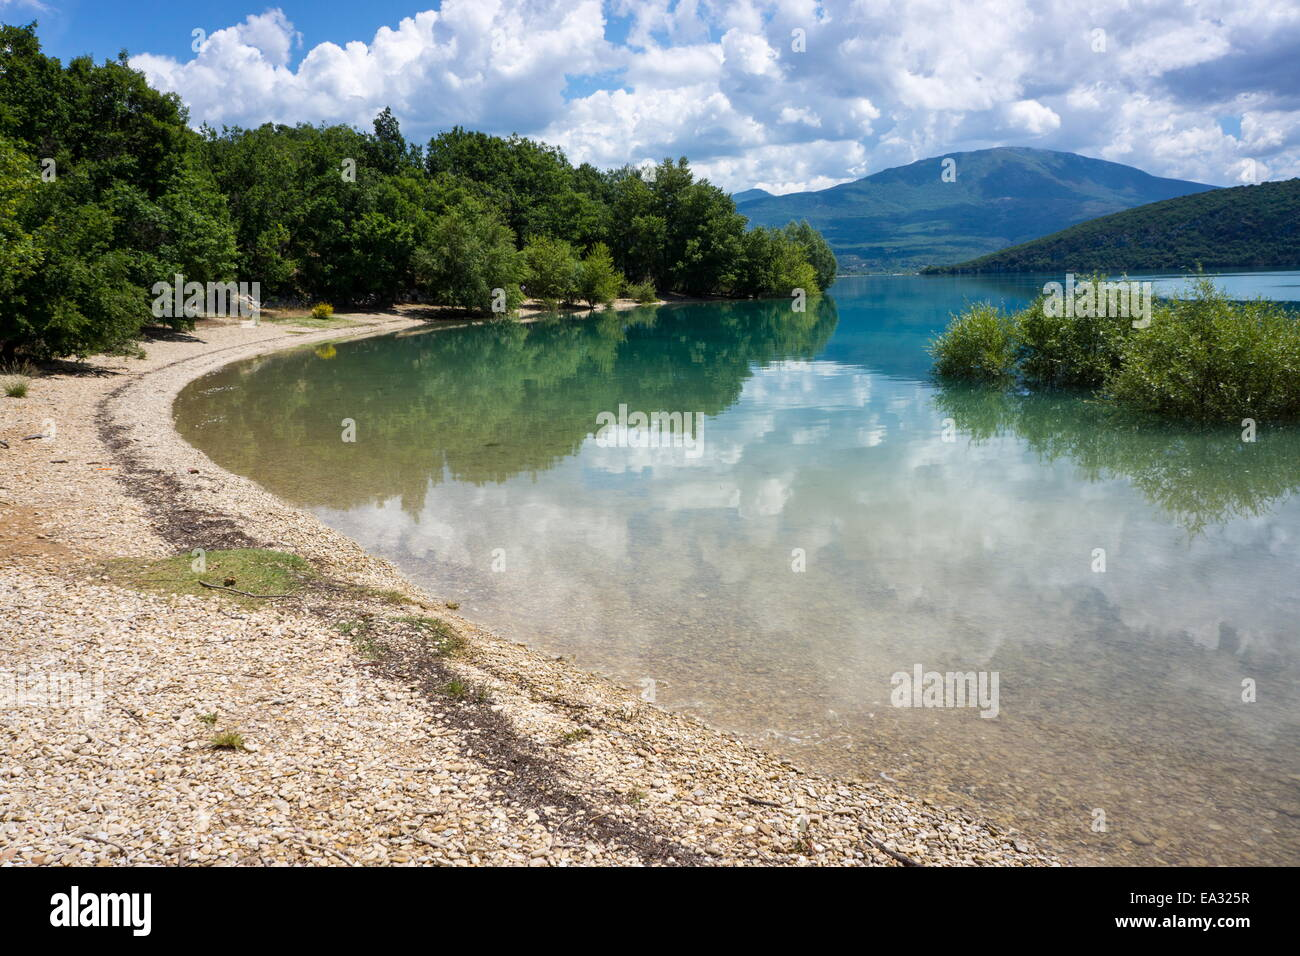 Lac de Sainte-Croix, Gorges du Verdon, France, Europe Stock Photo